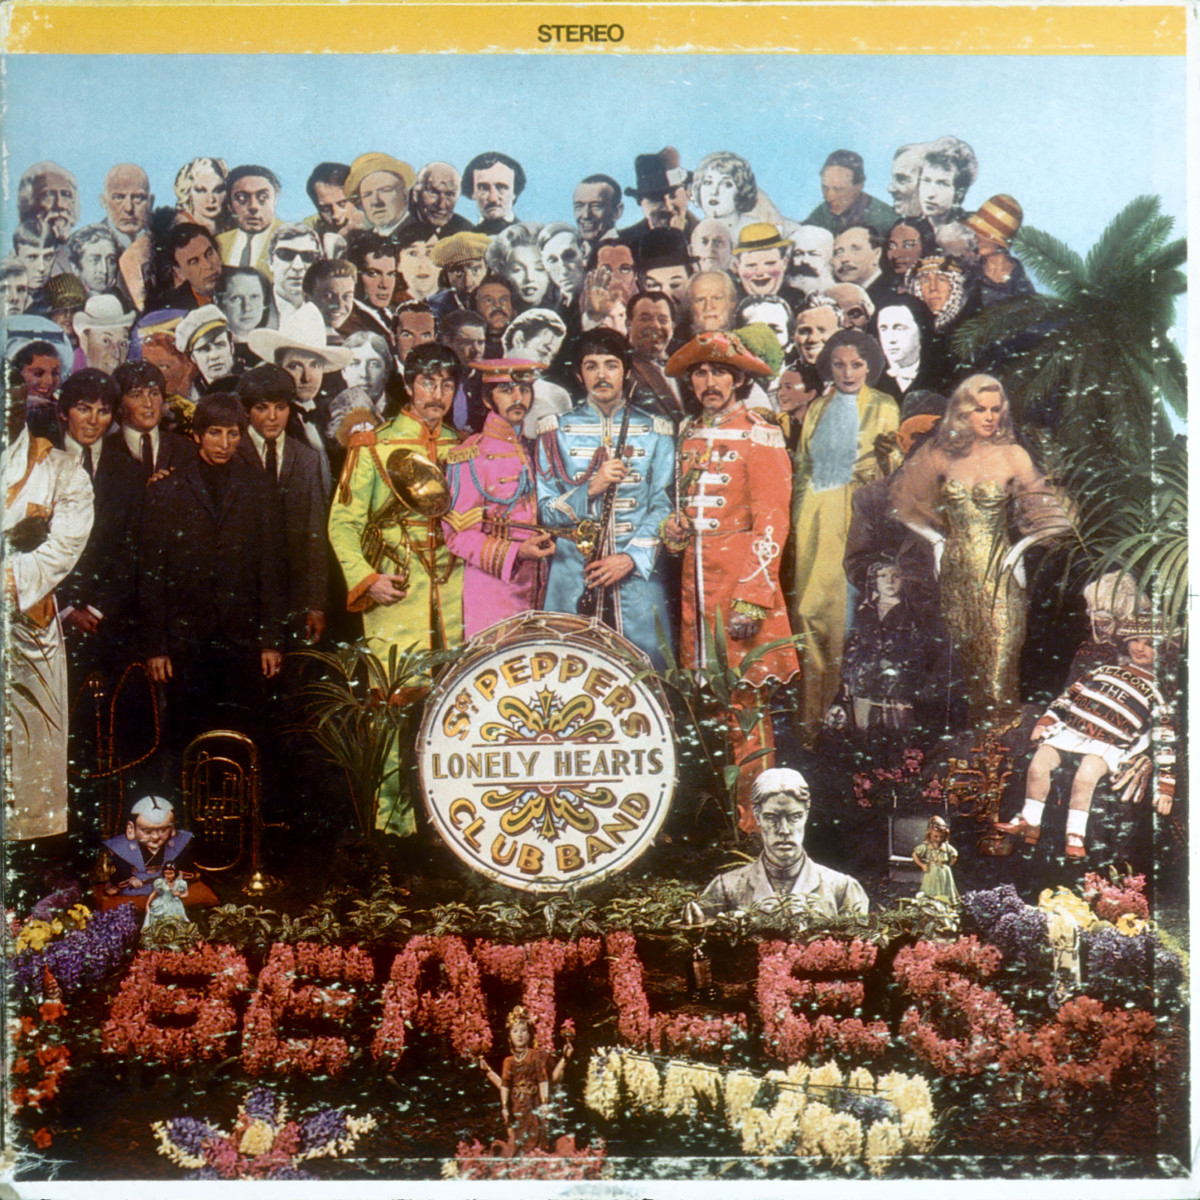 'Sgt. Pepper's Lonely Hearts Club Band' Album Cover